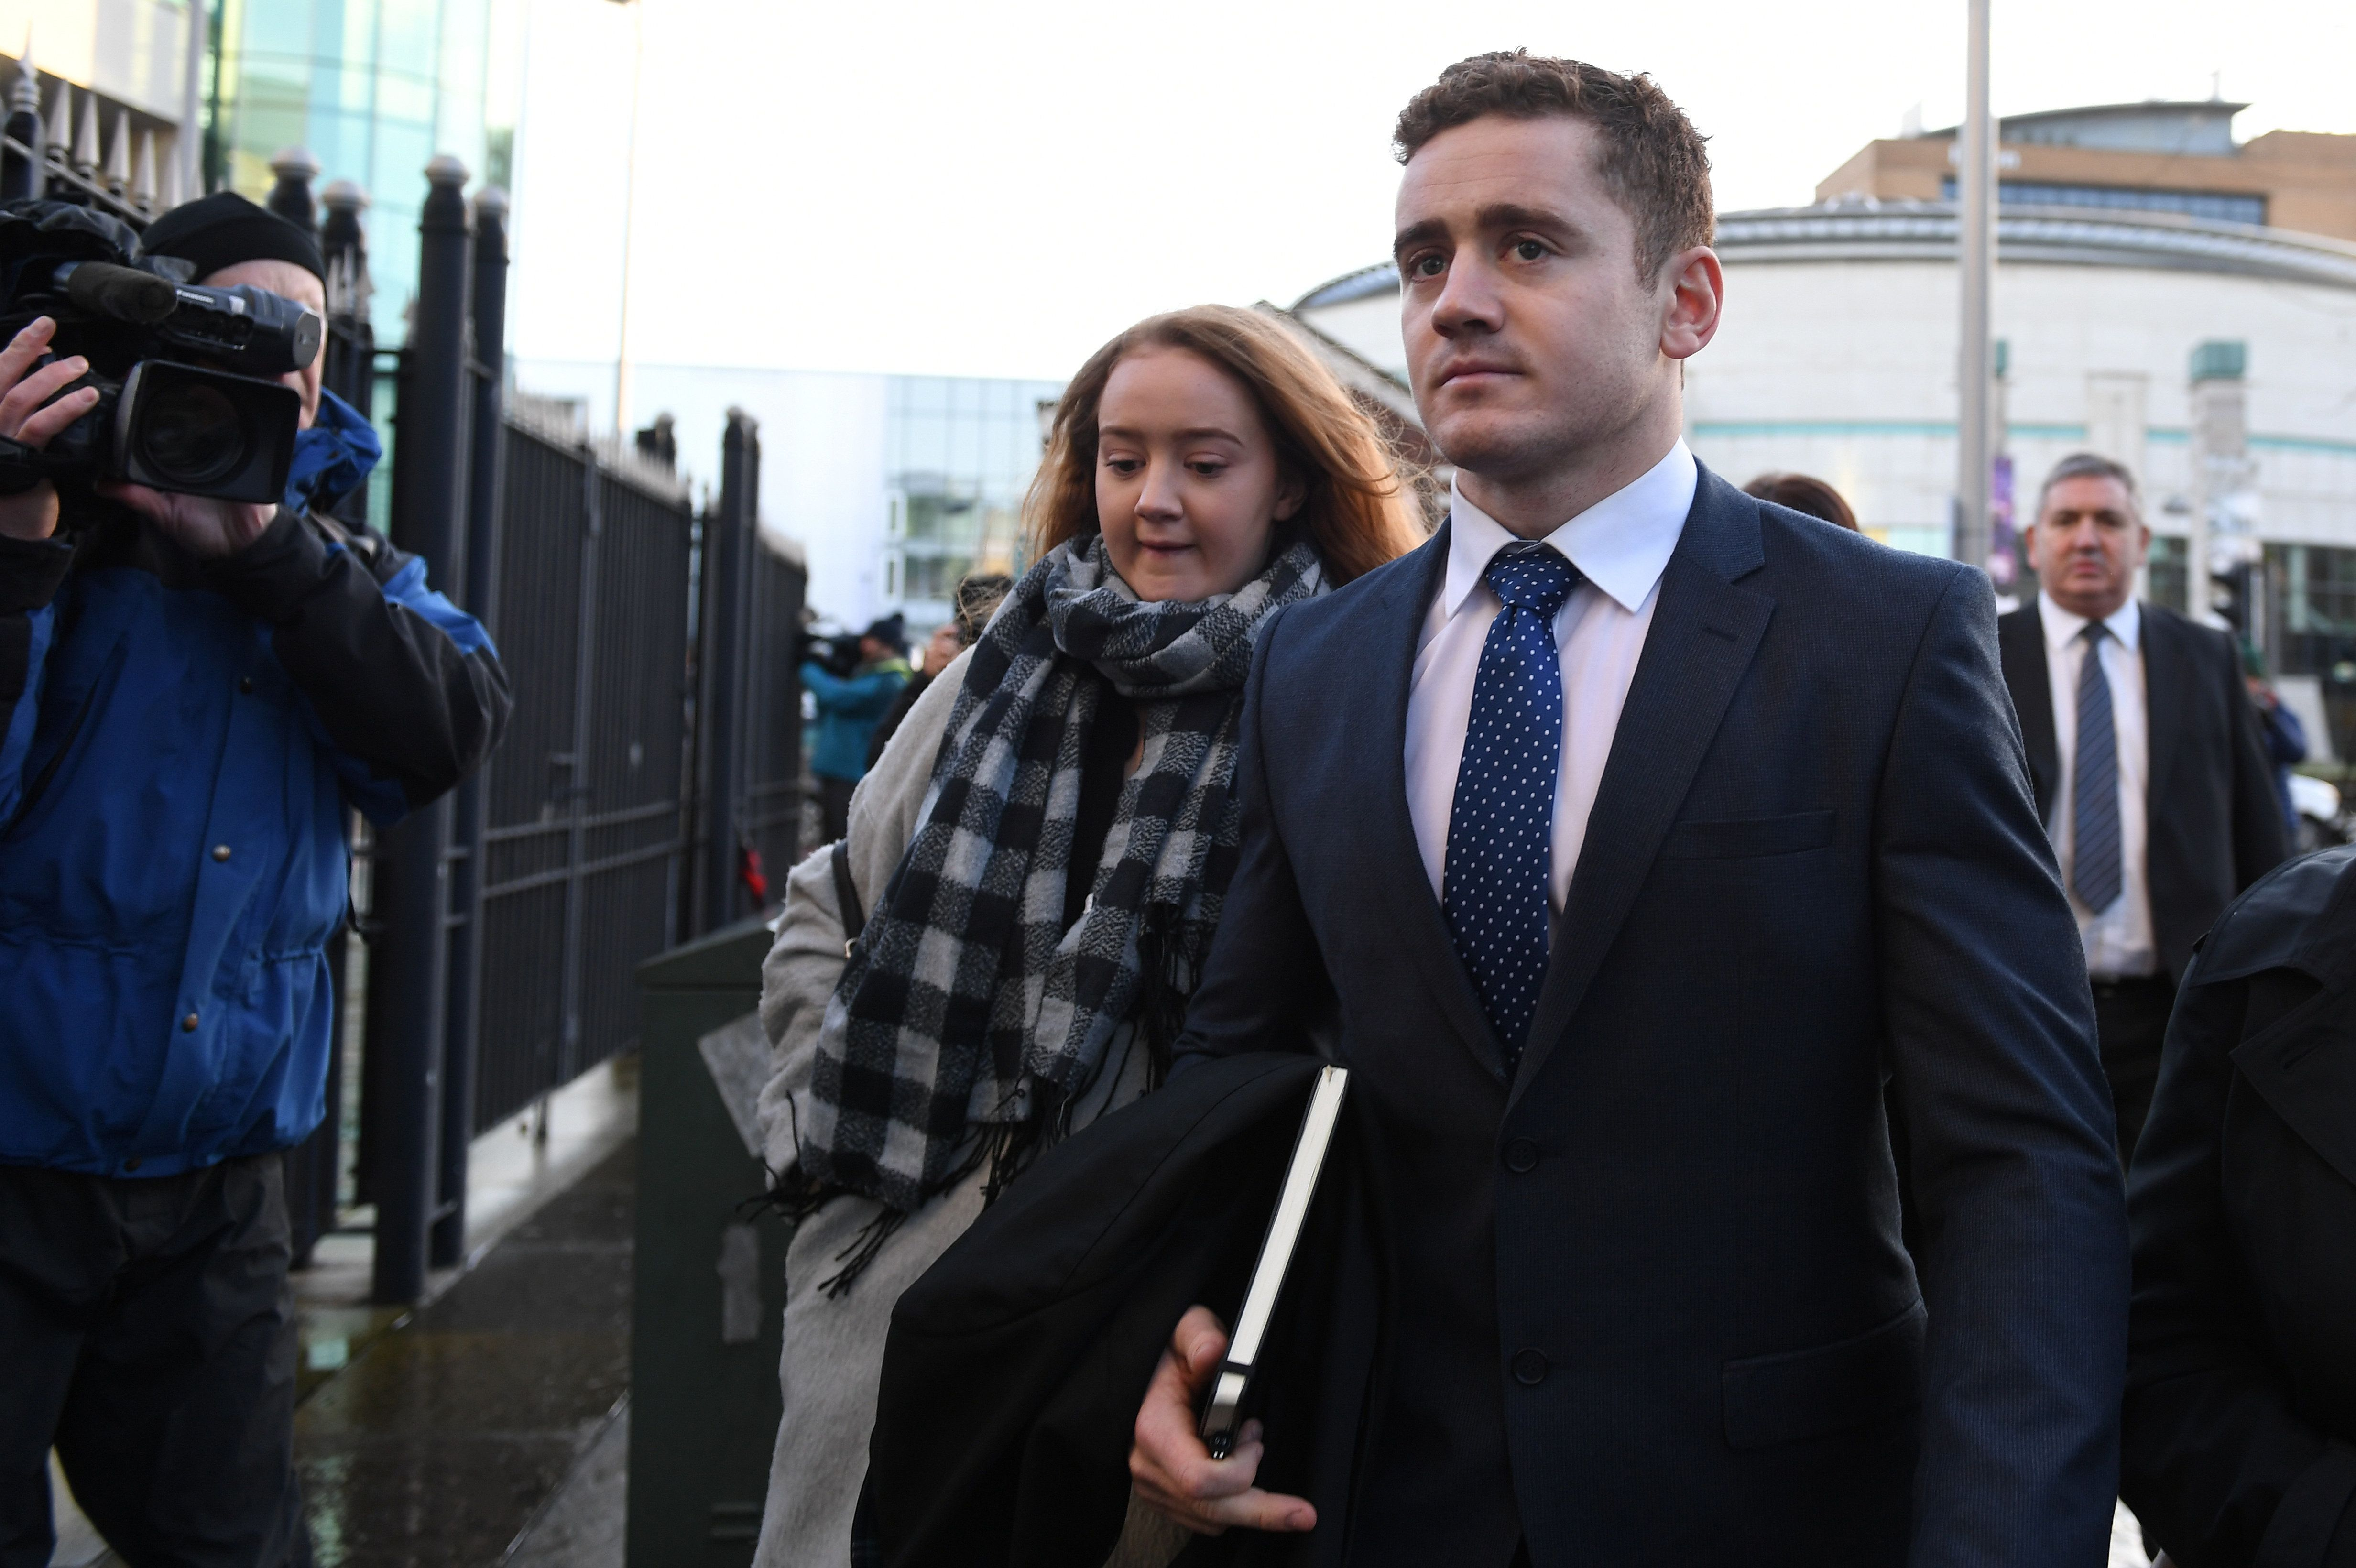 Ireland and Ulster rugby player Paddy Jackson has expressed his remorse after being acquitted of rape...